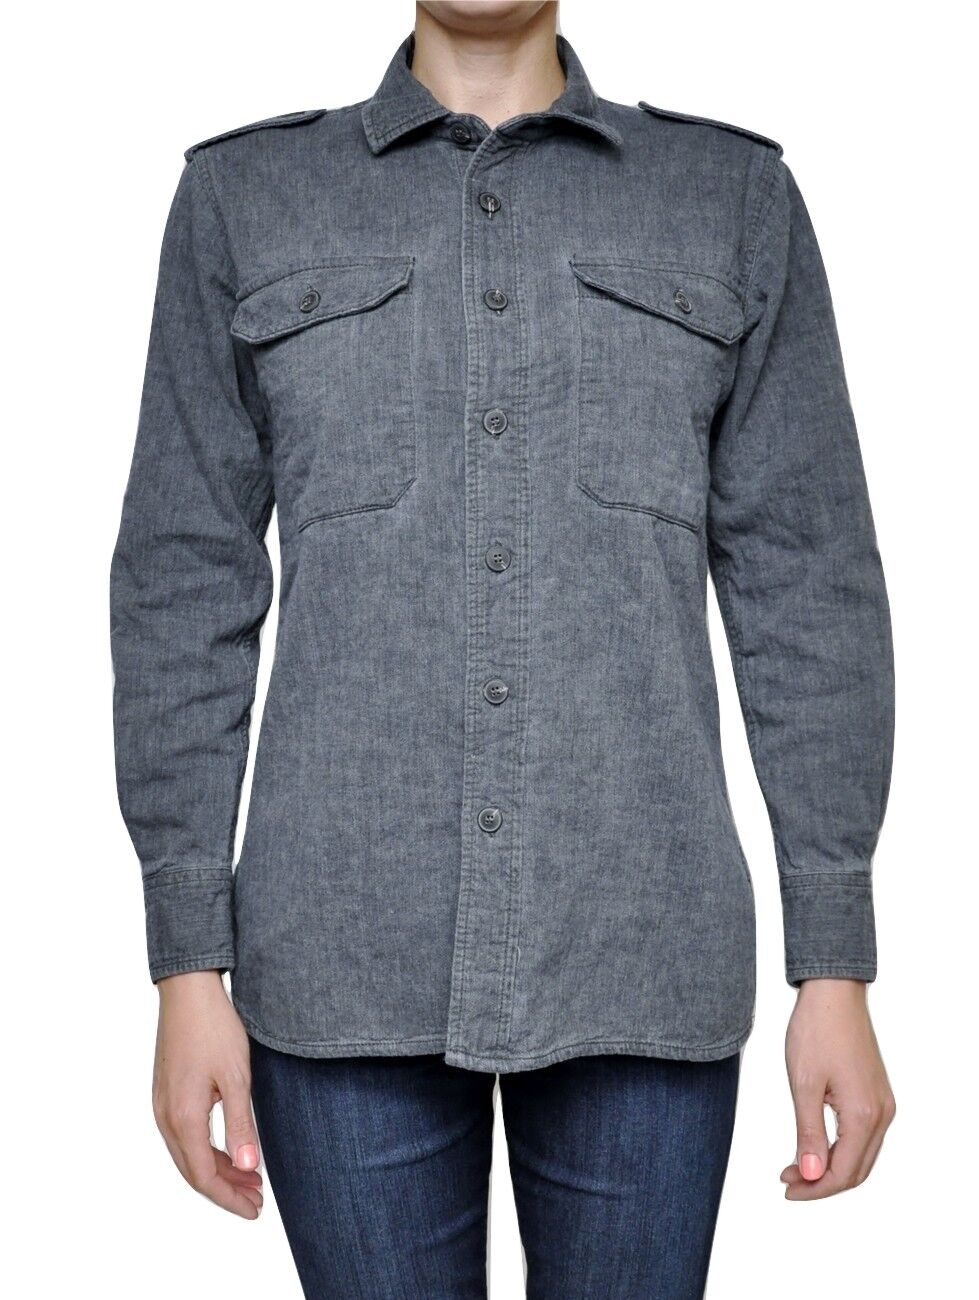 Joe's Jeans Military Shirt Chest Pockets Thick Cotton Shirt Charcoal Nwt